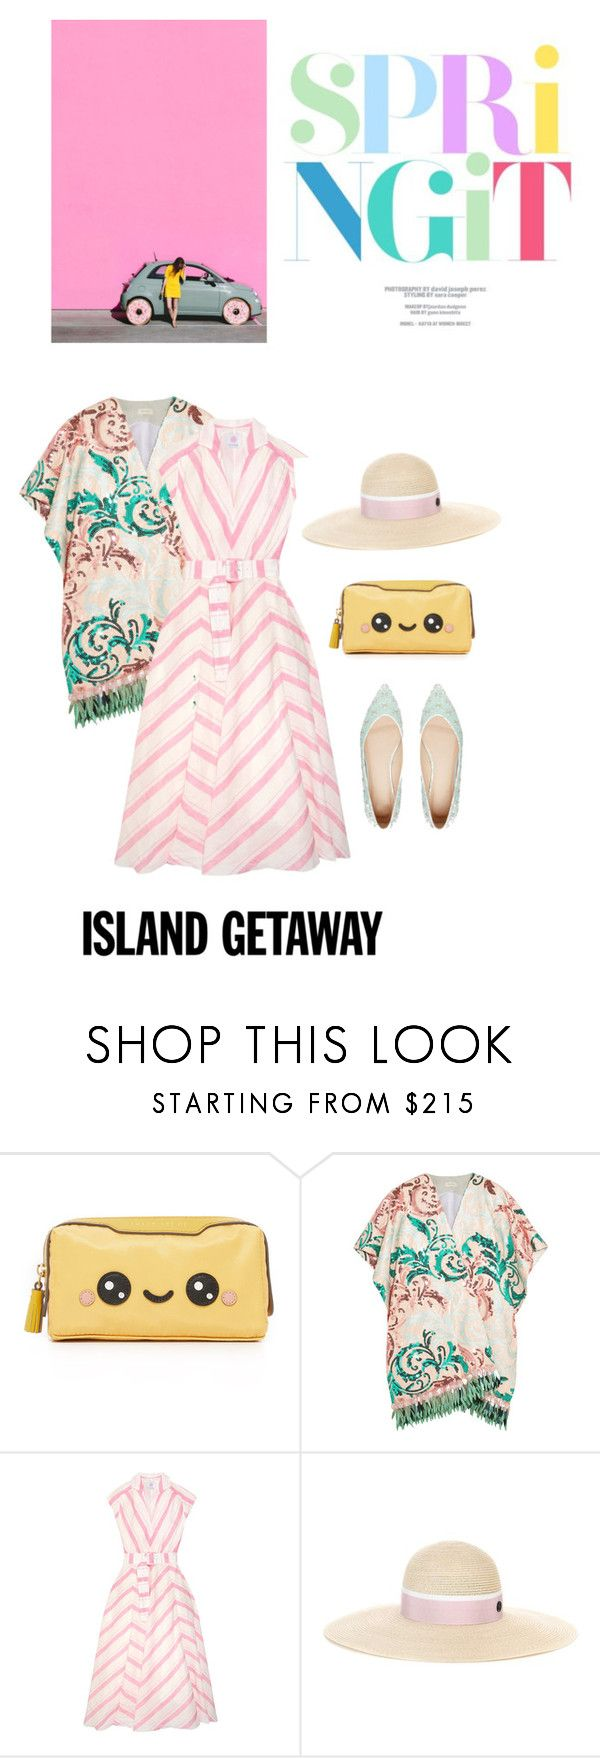 """Kawaii"" by iriadna ❤ liked on Polyvore featuring Anya Hindmarch, Delpozo, Gül Hürgel, Maison Michel, ASOS, summerdress, mixitup and islandgetaway"